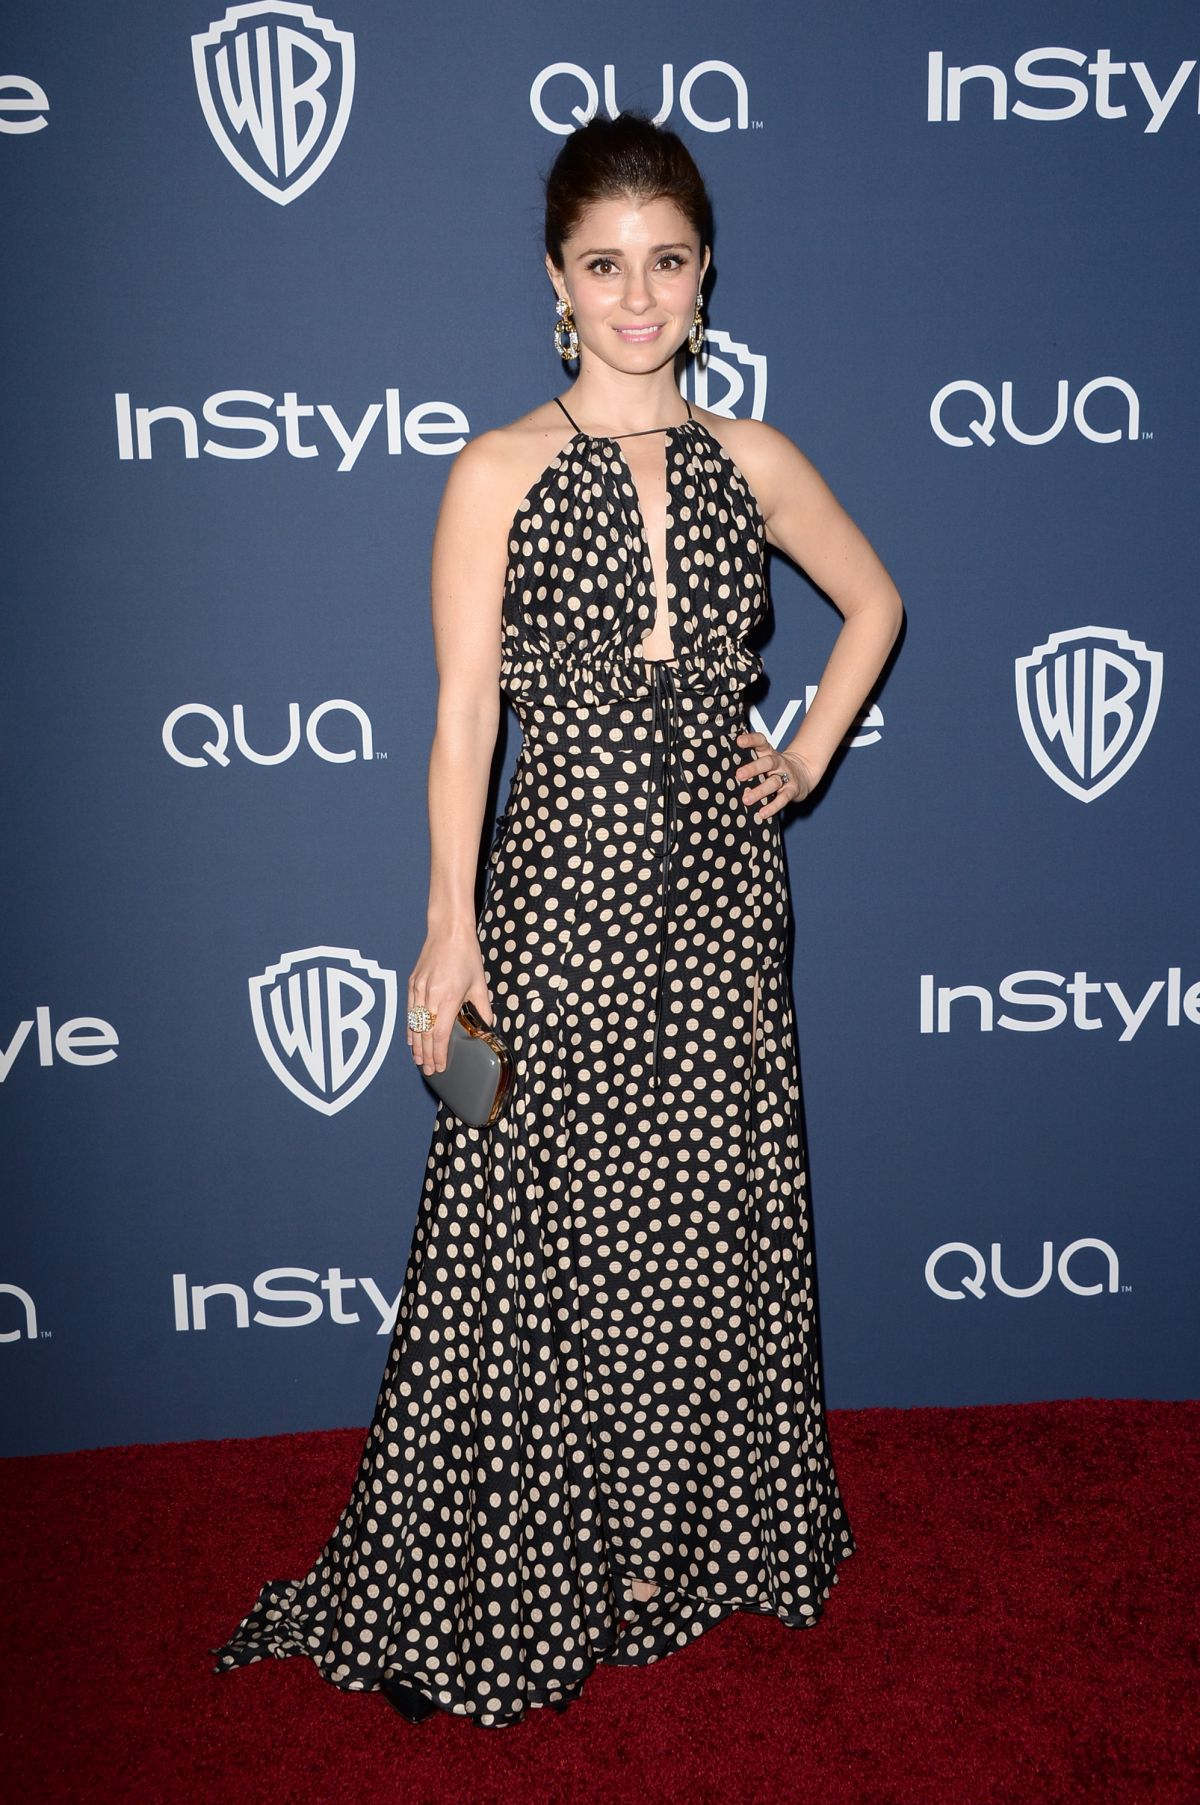 SHIRI APPLEBY at Instyle and Warner Bros. Golden Globes Afterparty